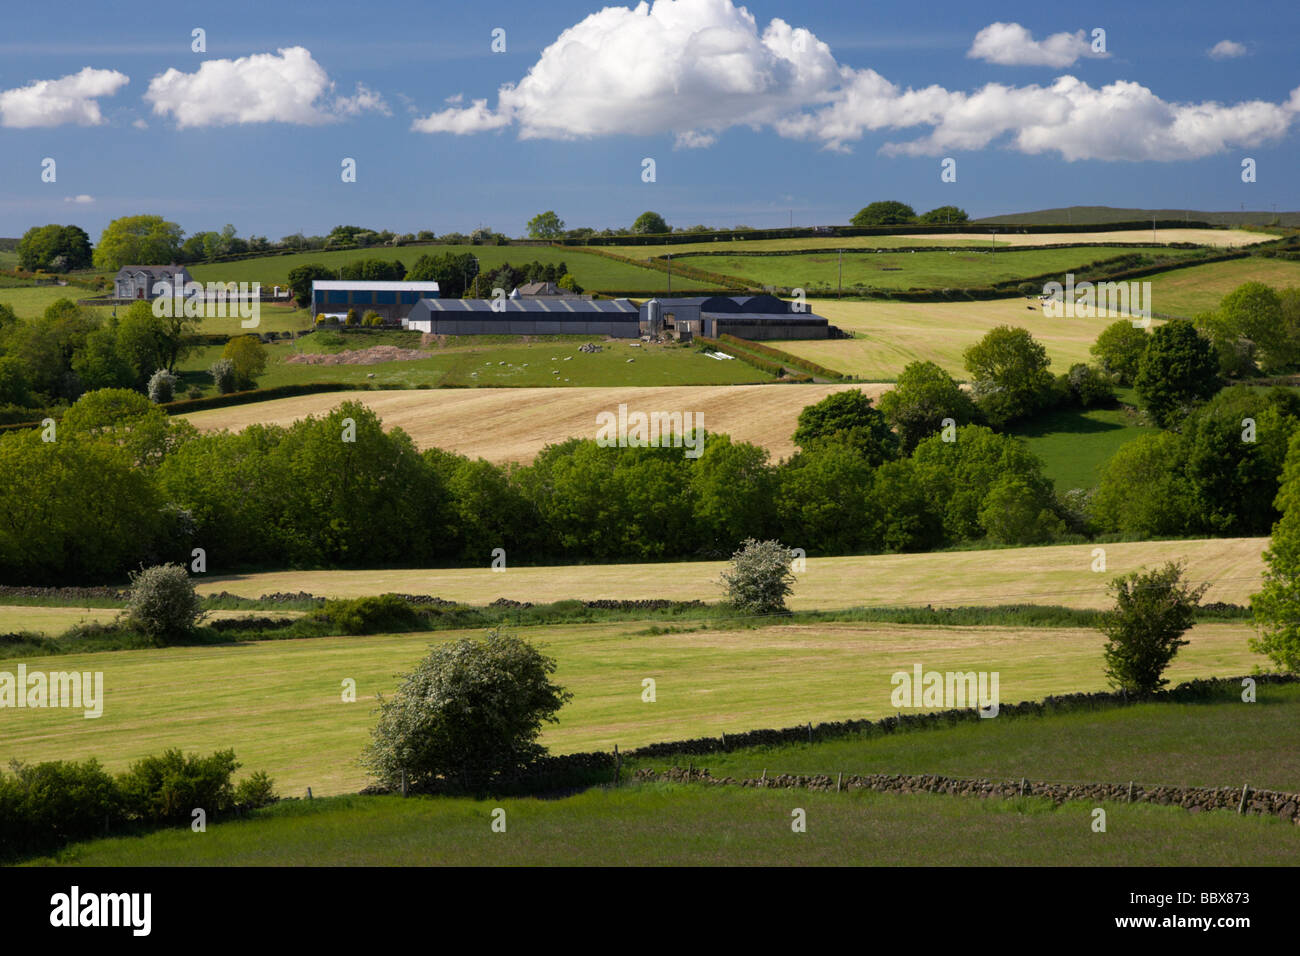 farm buildings on hilly farmland in county antrim northern ireland uk - Stock Image